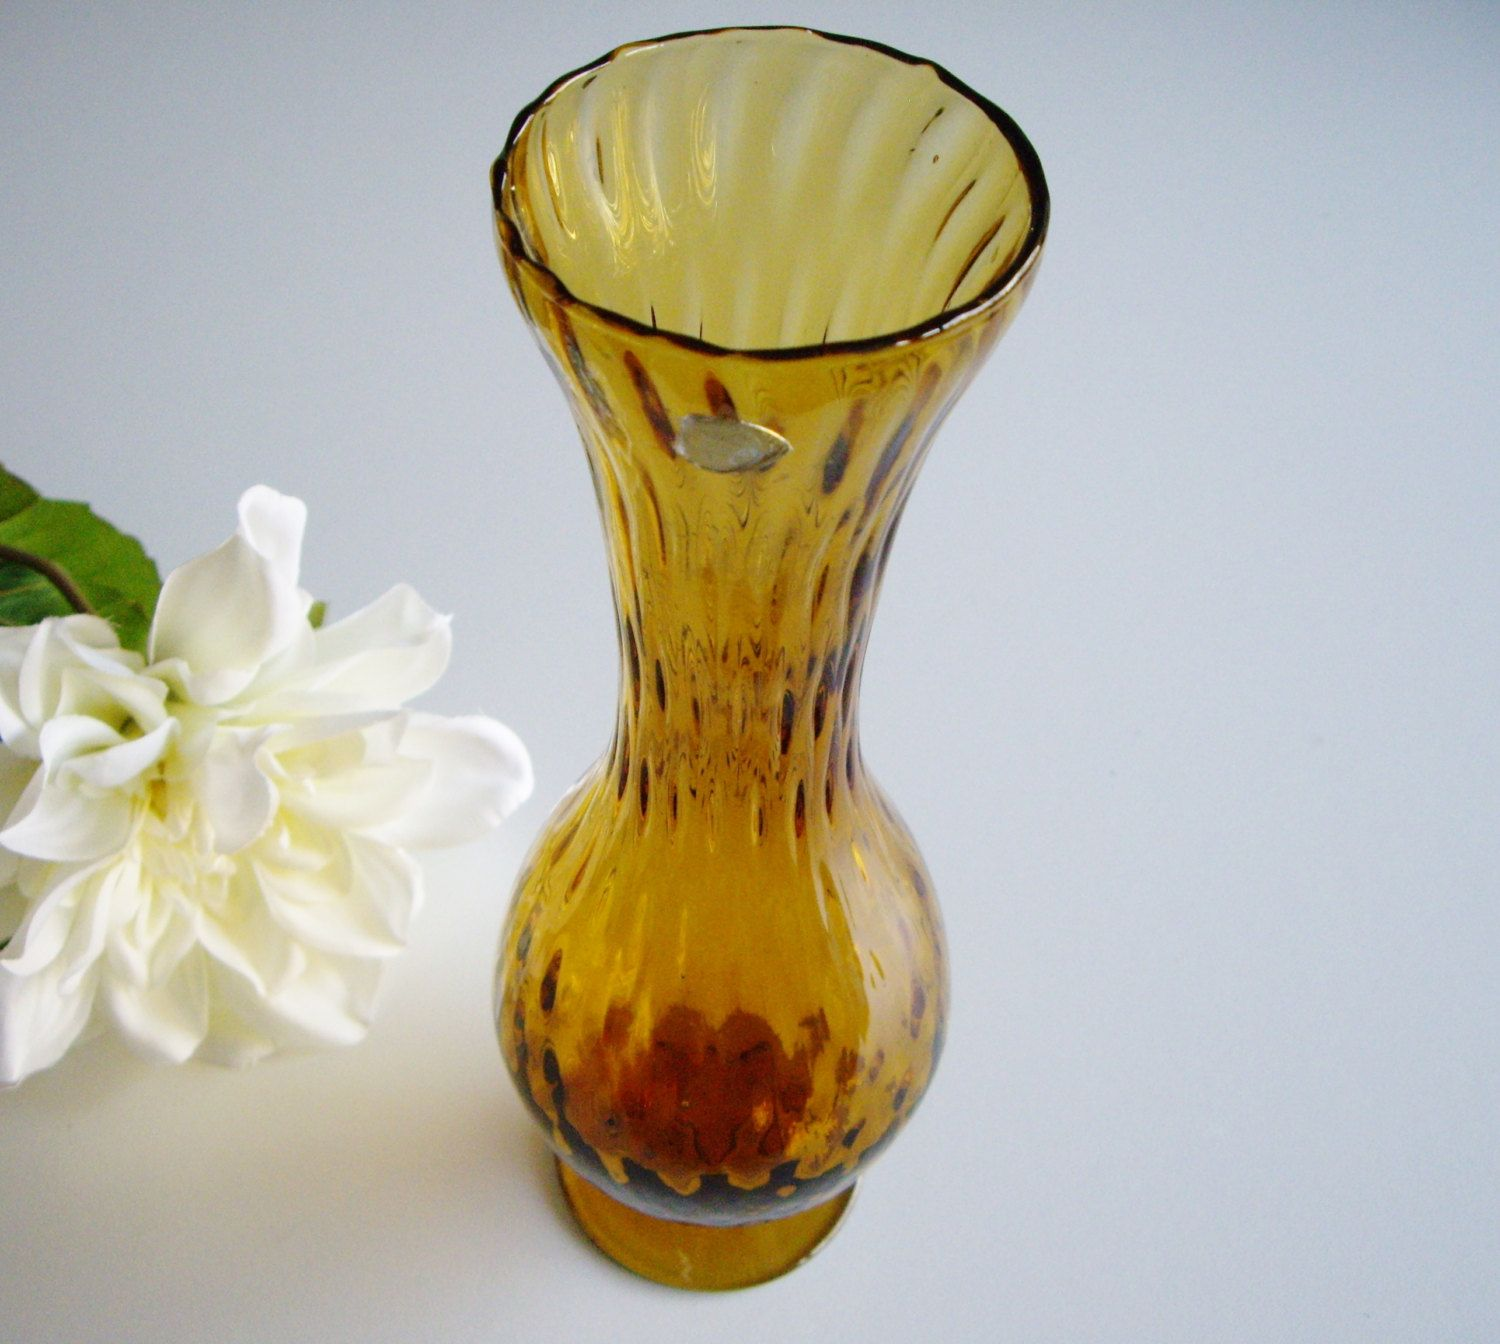 Vintage Signed Amber Glass Bud Vase Made In Italy Optic Bulbous Yellow Signed Label Italian Footed Gift Under 25 Mid Cen Bud Vases Amber Glass Vase